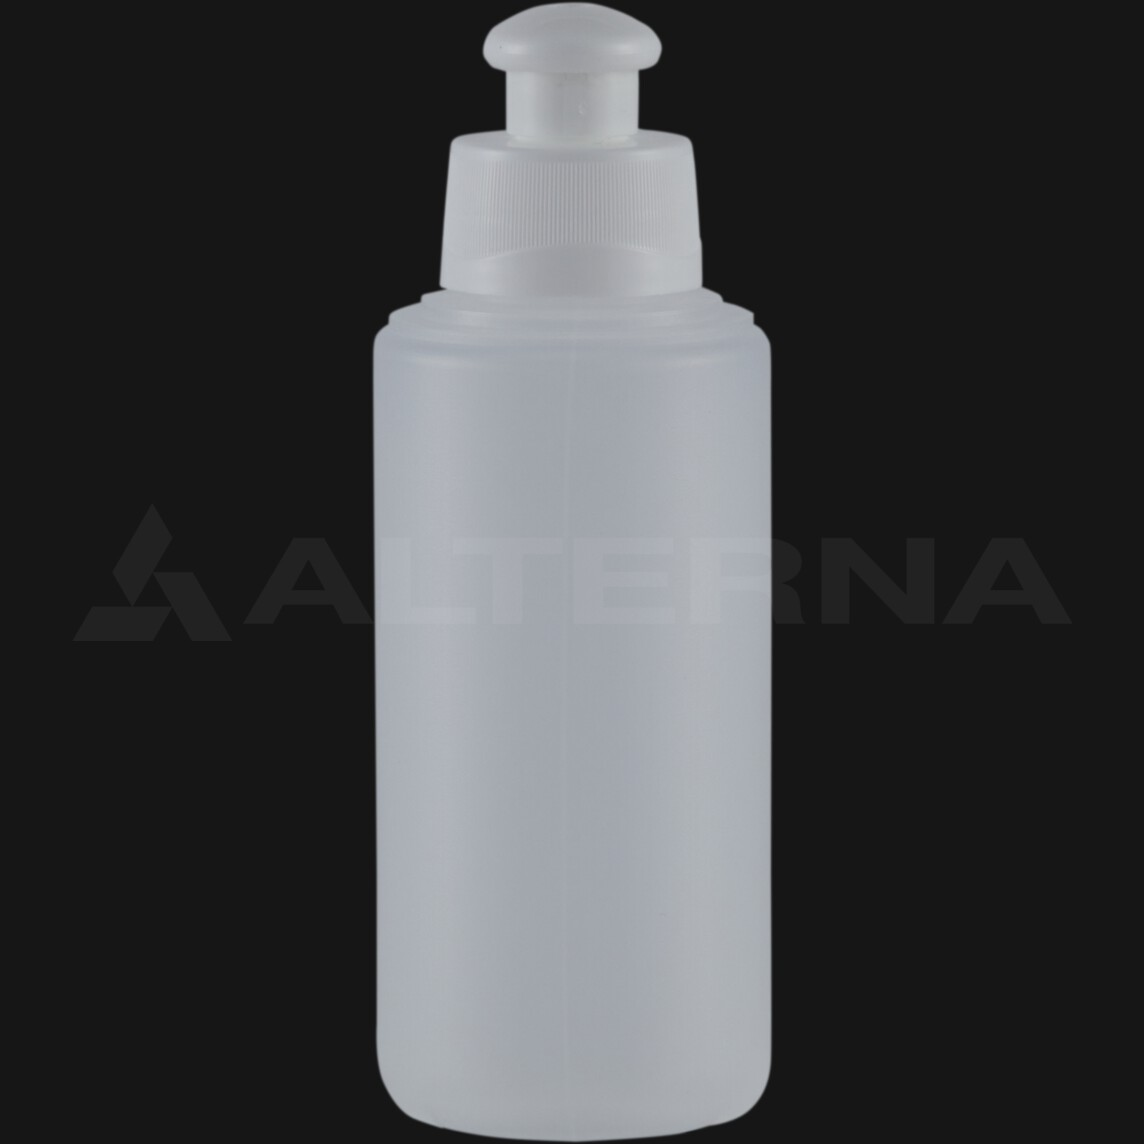 100 ml HDPE Bottle with 28 mm Push Pull Cap